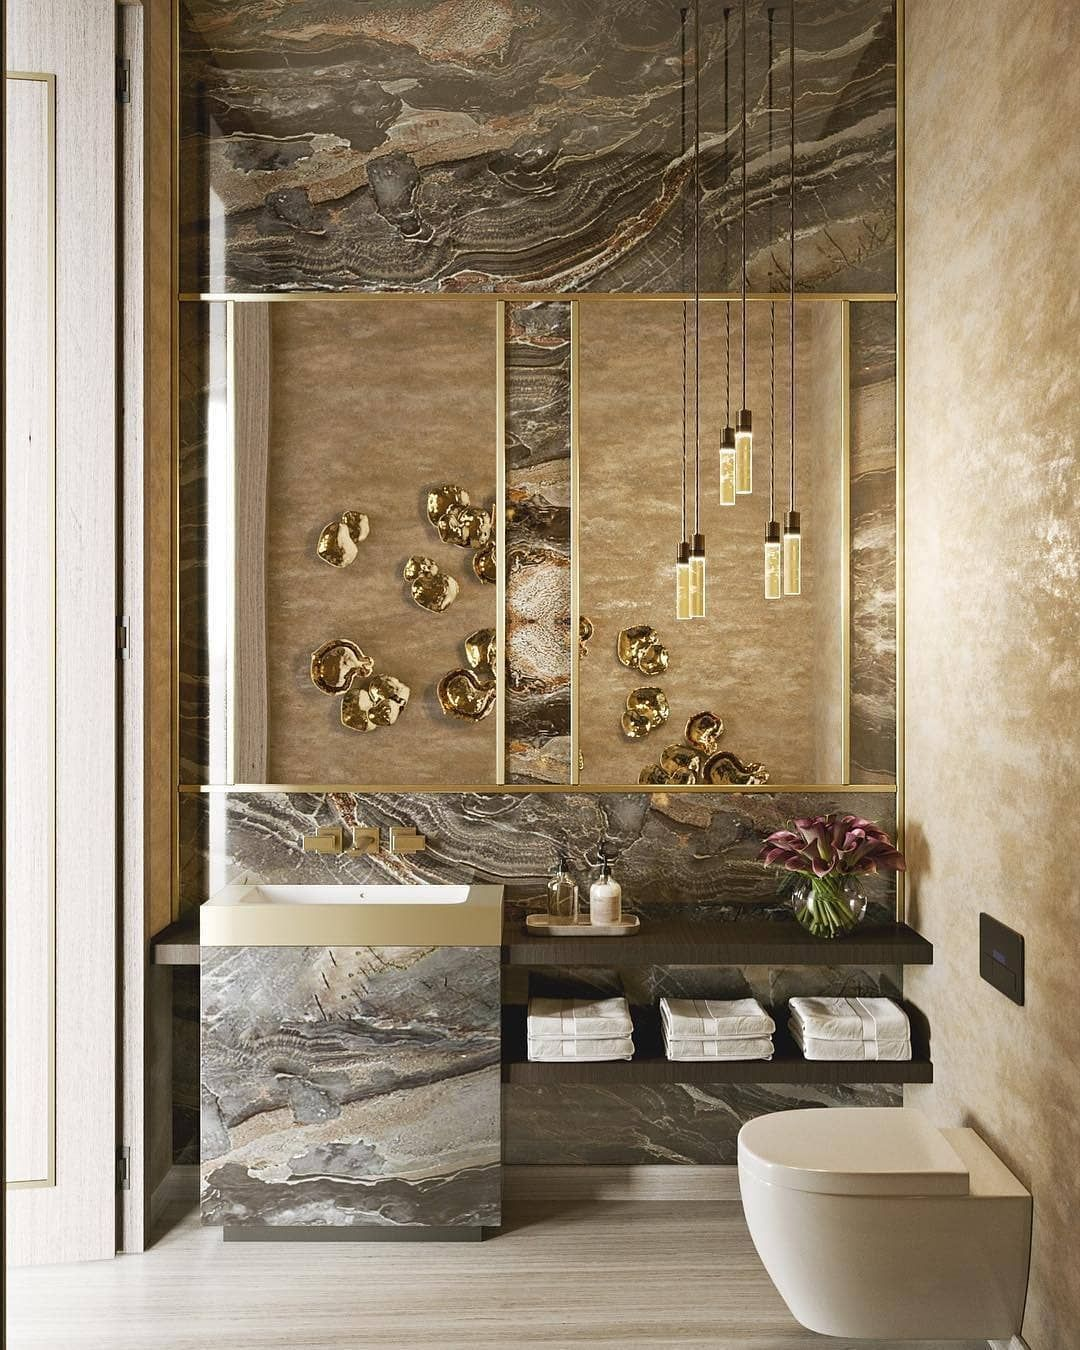 Luxurious Bathroom Images - Google Search In 2020 | Modern Luxury Bathroom, Luxury Master Bathrooms, Luxury Bathroom